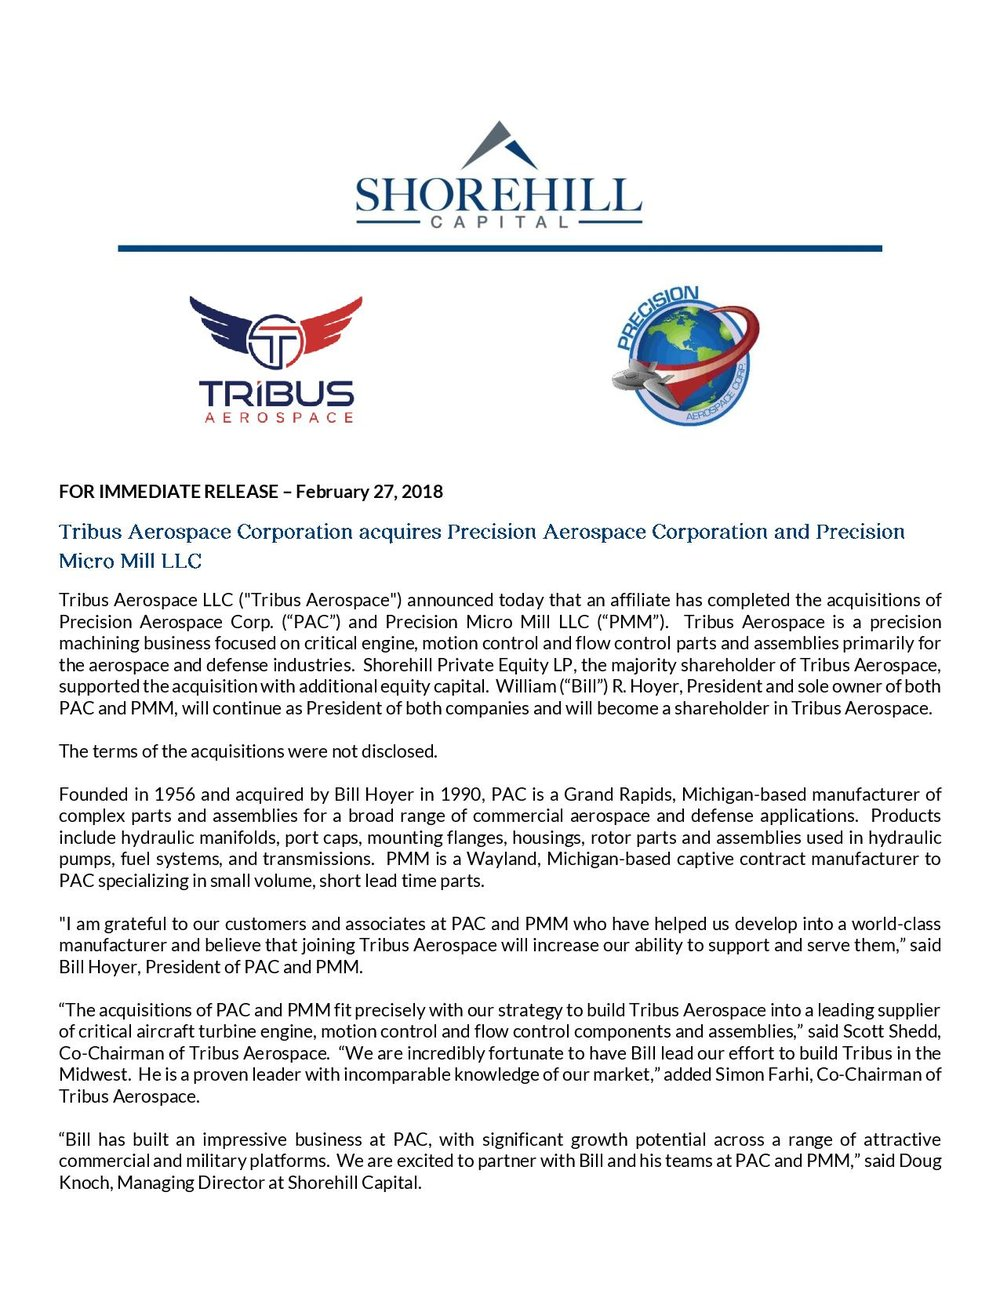 Press Release - Tribus Aerospace Acquires Precision Aerospace Corporation and Precision Micro Mill - vFINAL-page-001.jpg